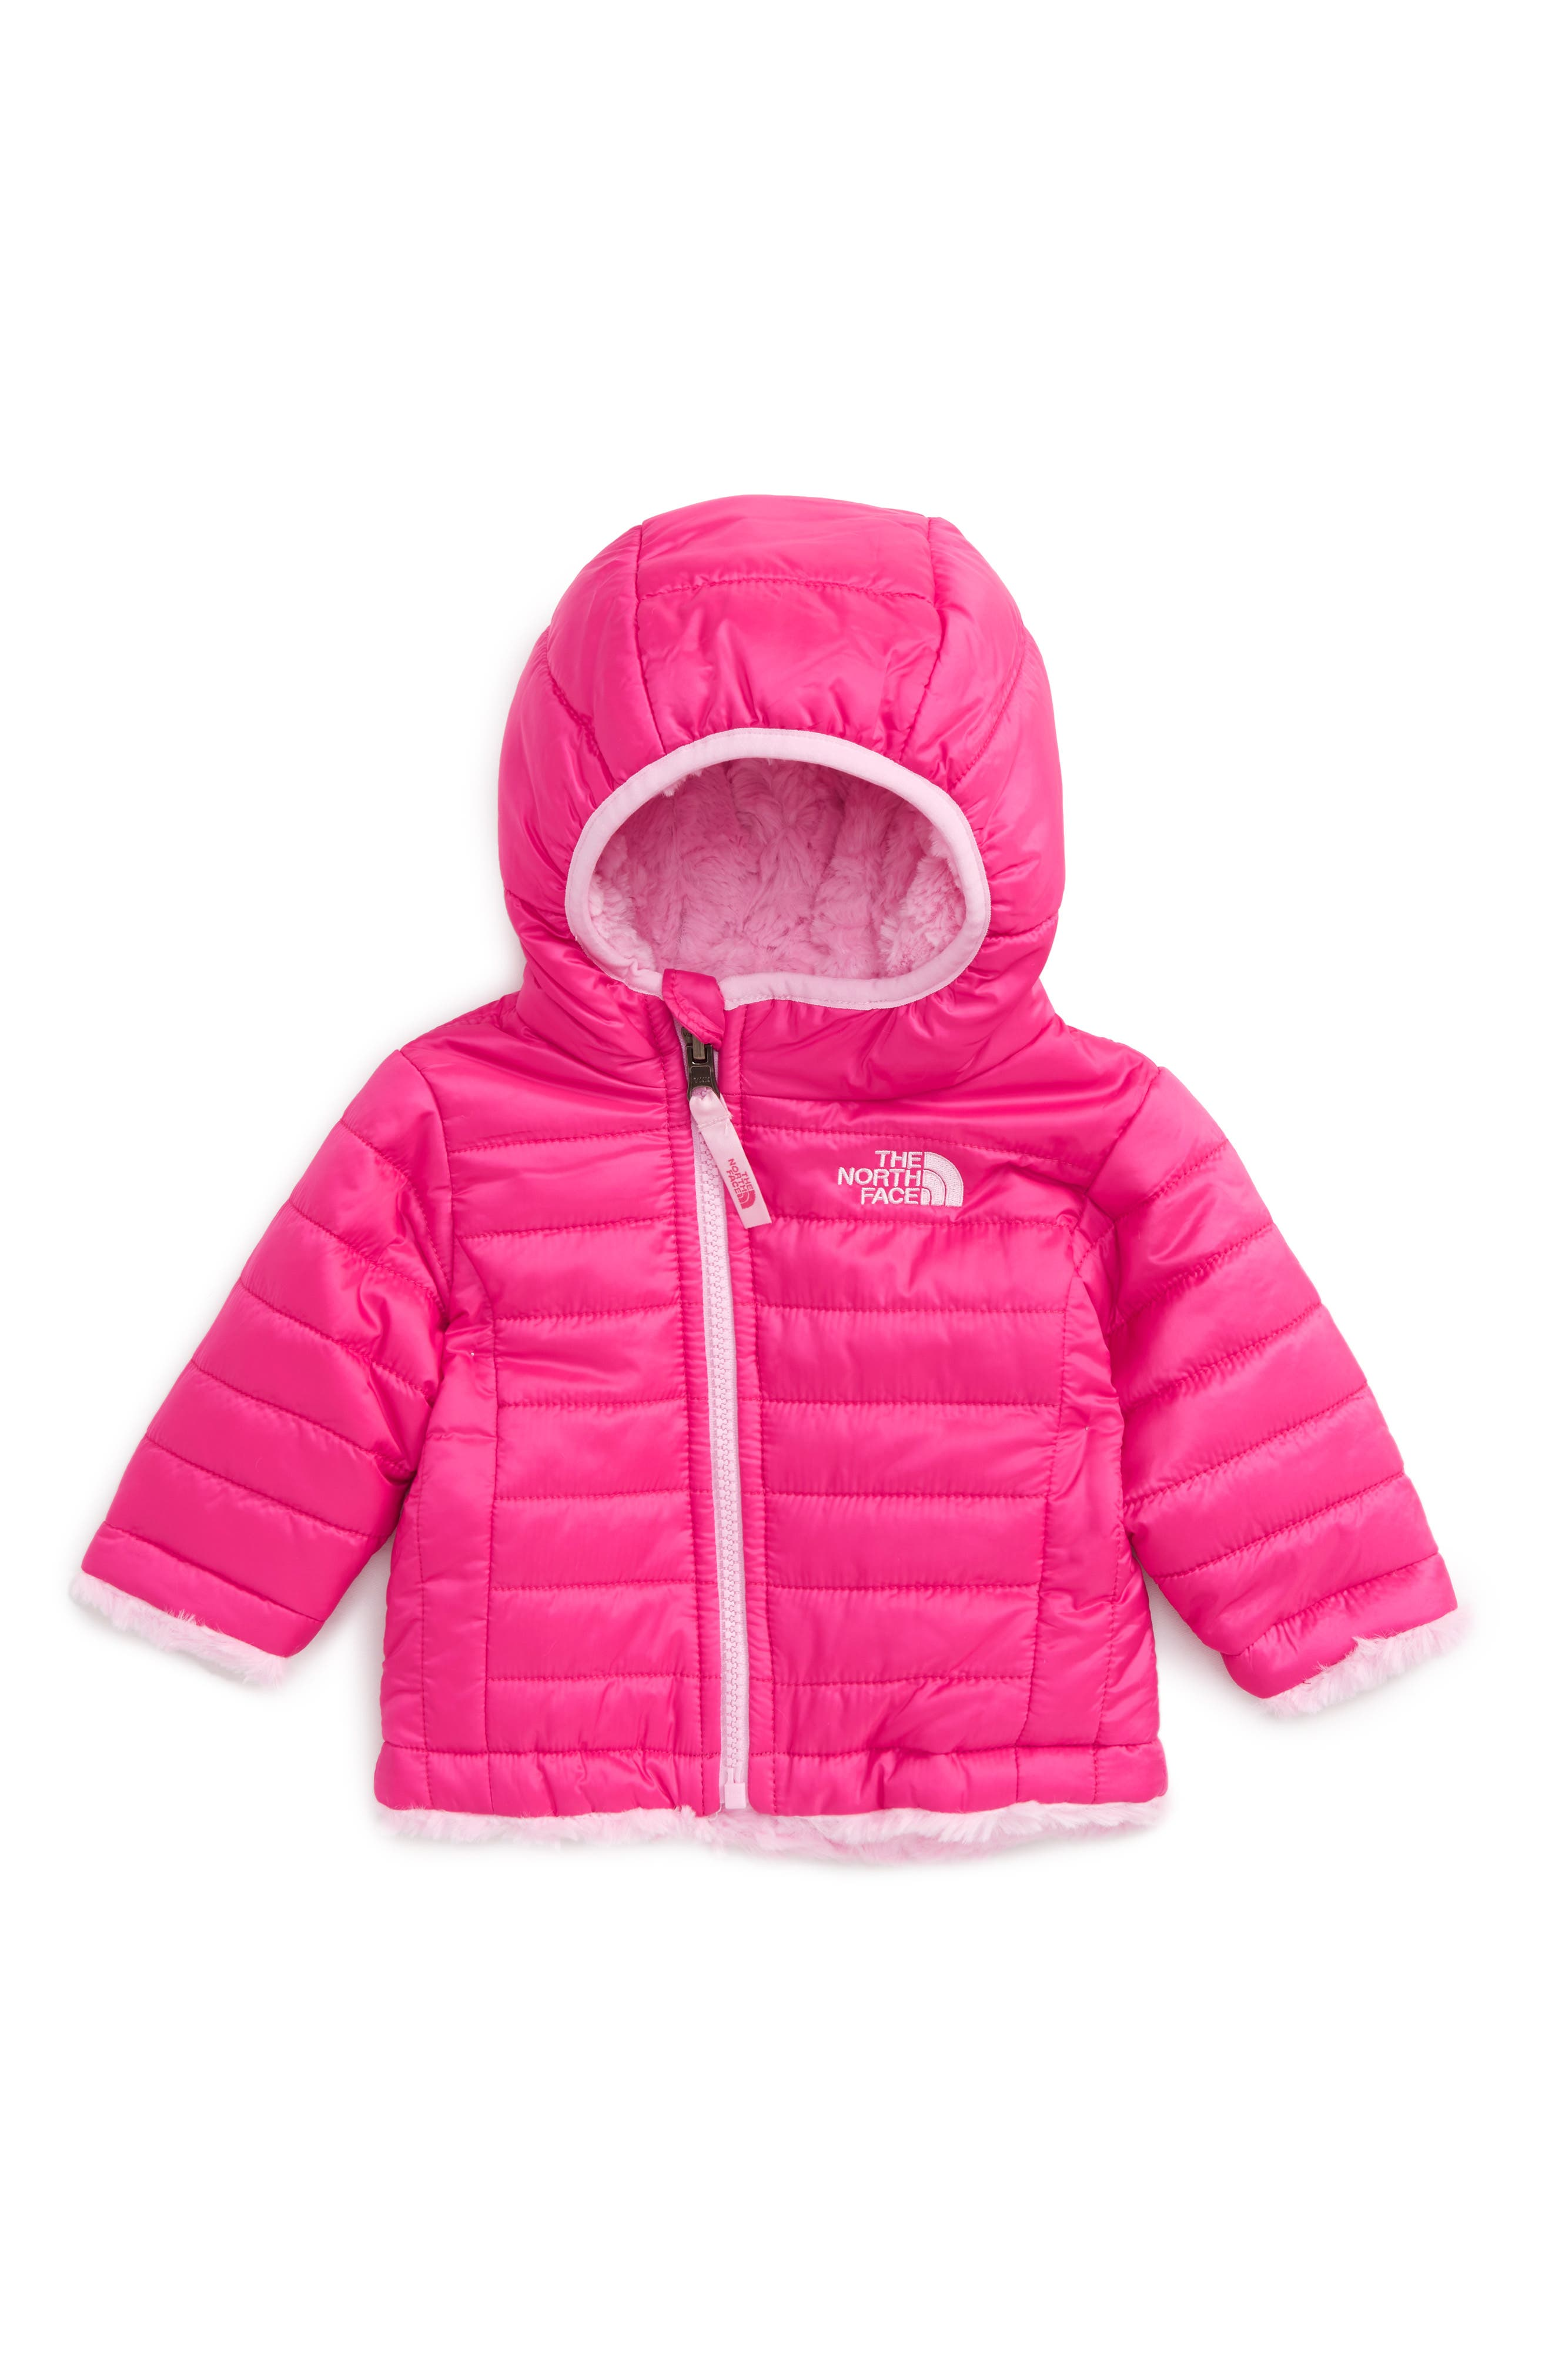 Main Image - The North Face 'Mossbud' Reversible Water Repellent Jacket (Baby Girls)